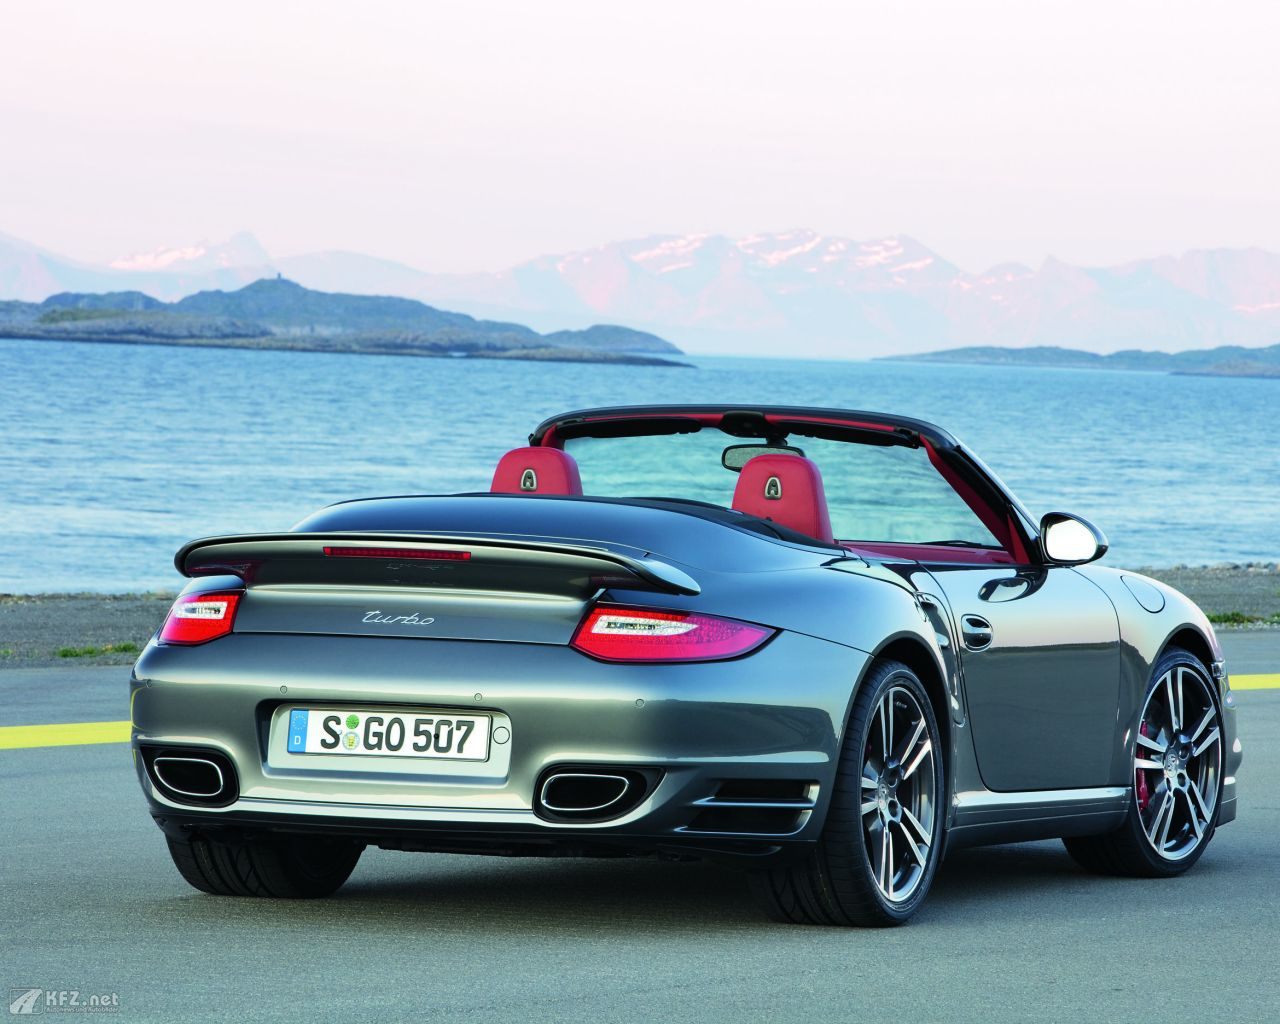 porsche-911-turbo-coupe-1280x1024-5